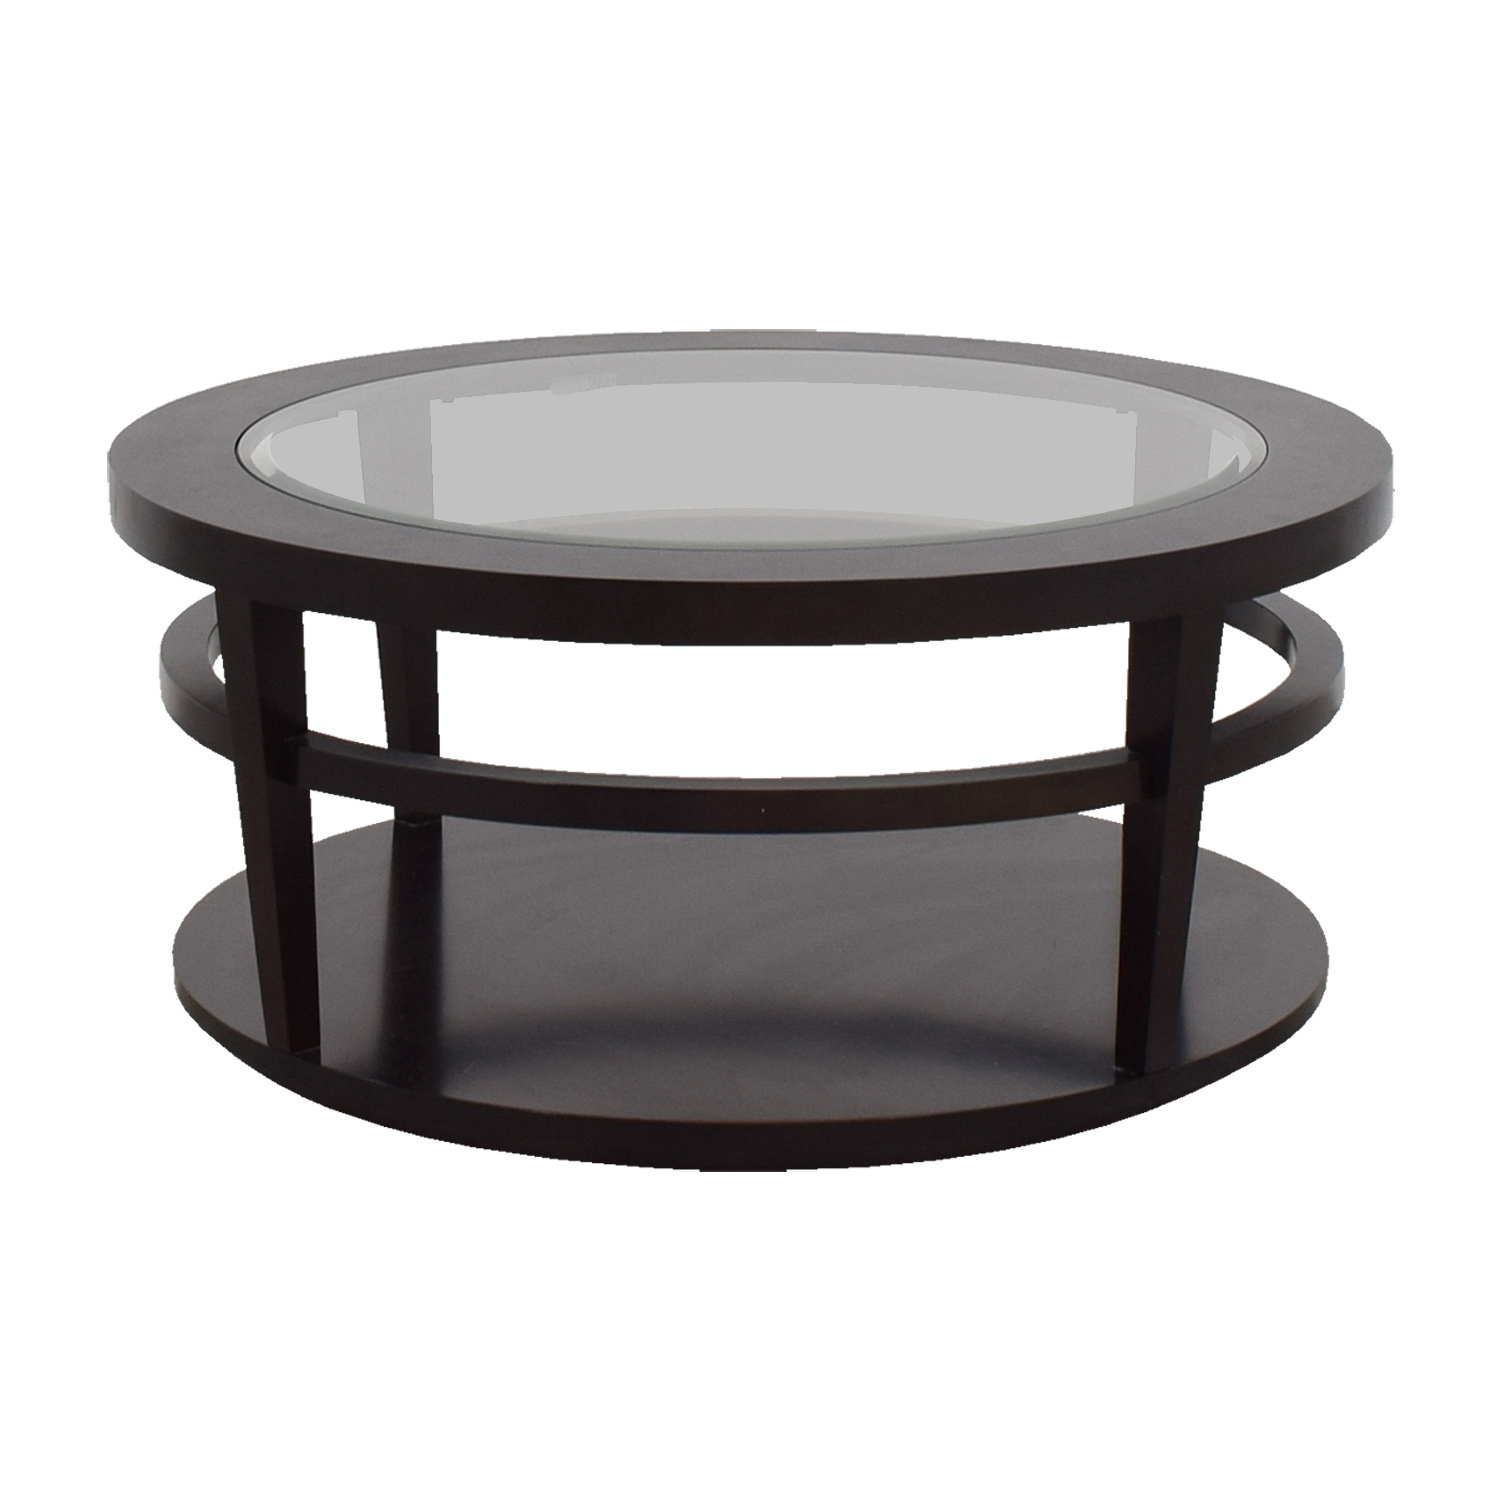 Macy's Macy's Avalon Round Glass and Wood Coffee Table nyc